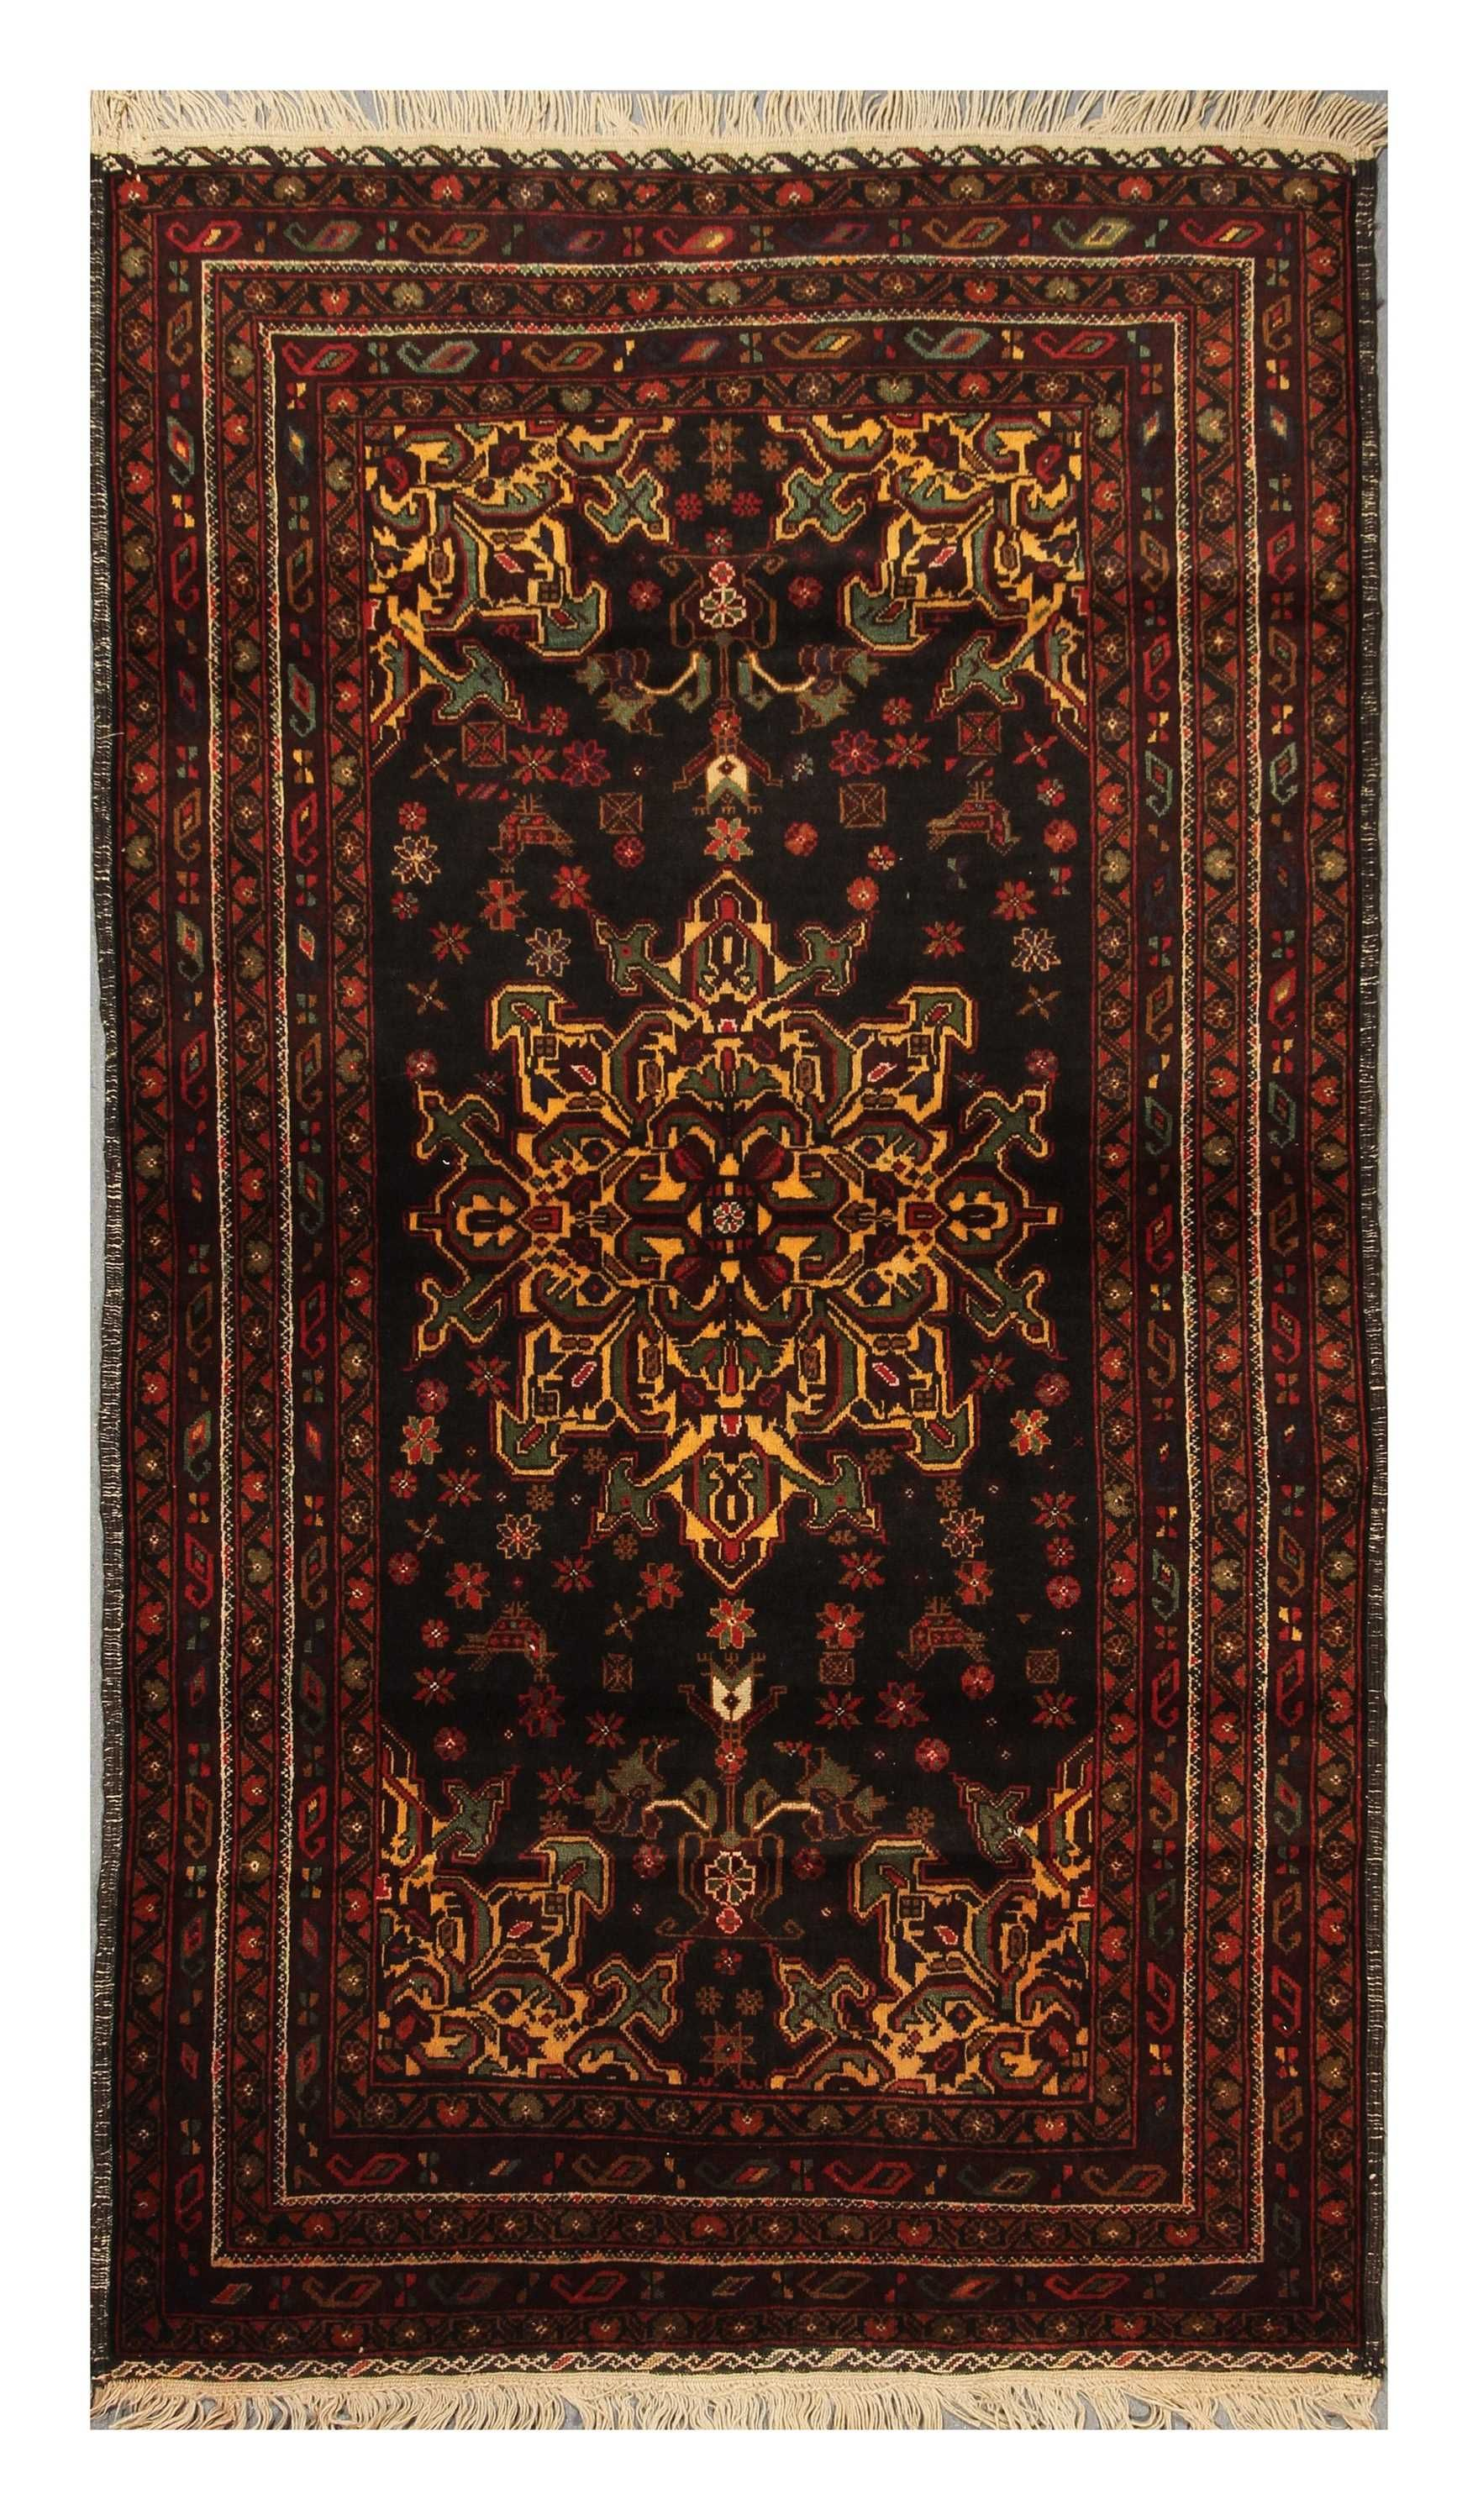 #carpetsinbazaar - Oriental Carpet | Tribal | #Rugs Baluchi carpets (also called Baluch or Beluchi carpets) are handmade carpets originally made by Baluch nomads, living near the border between Iran,Pakistan,and Afghanistan Age of this carpet is 30-40 years old.